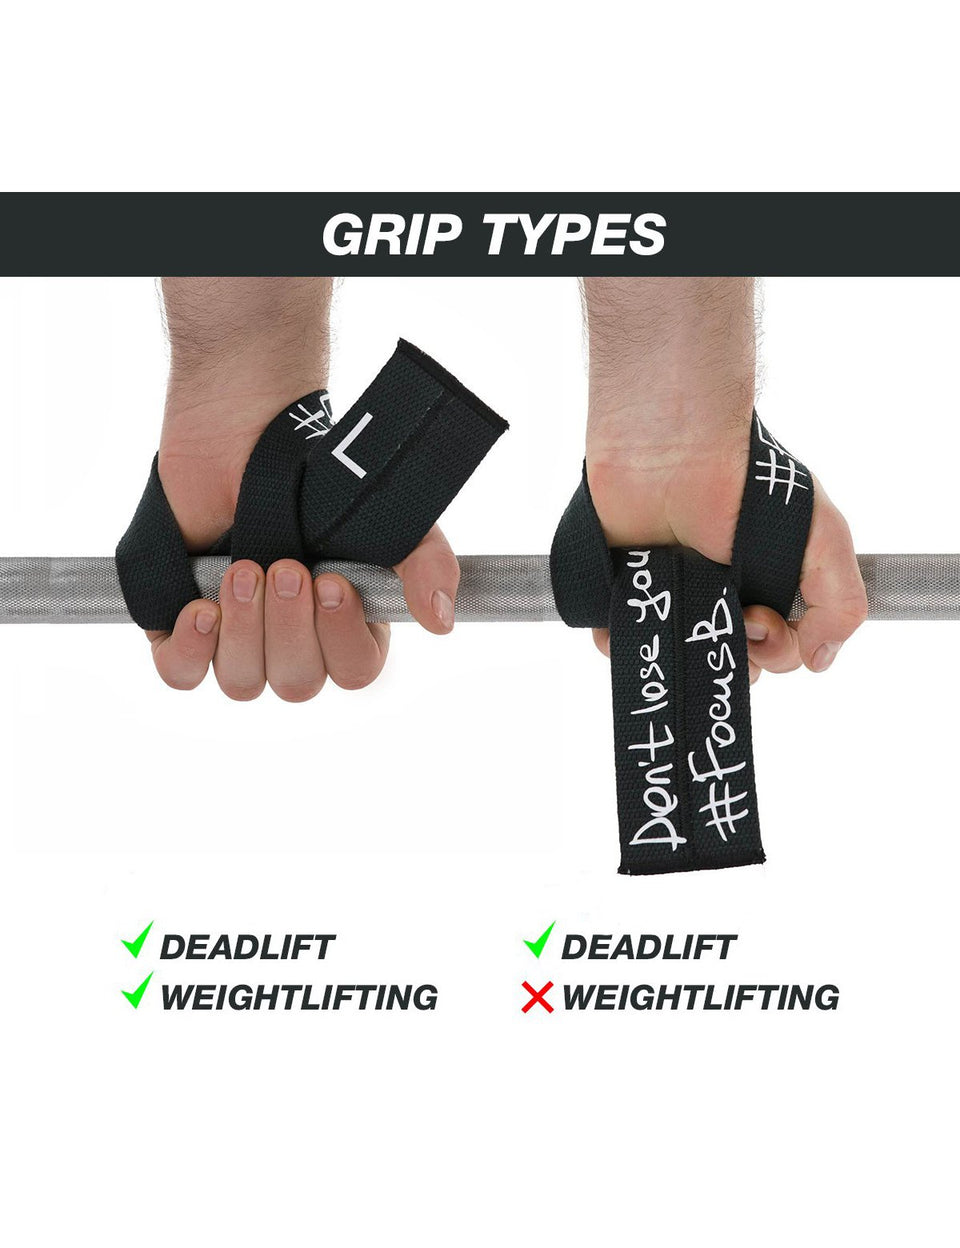 How to use lifting straps Deadlift